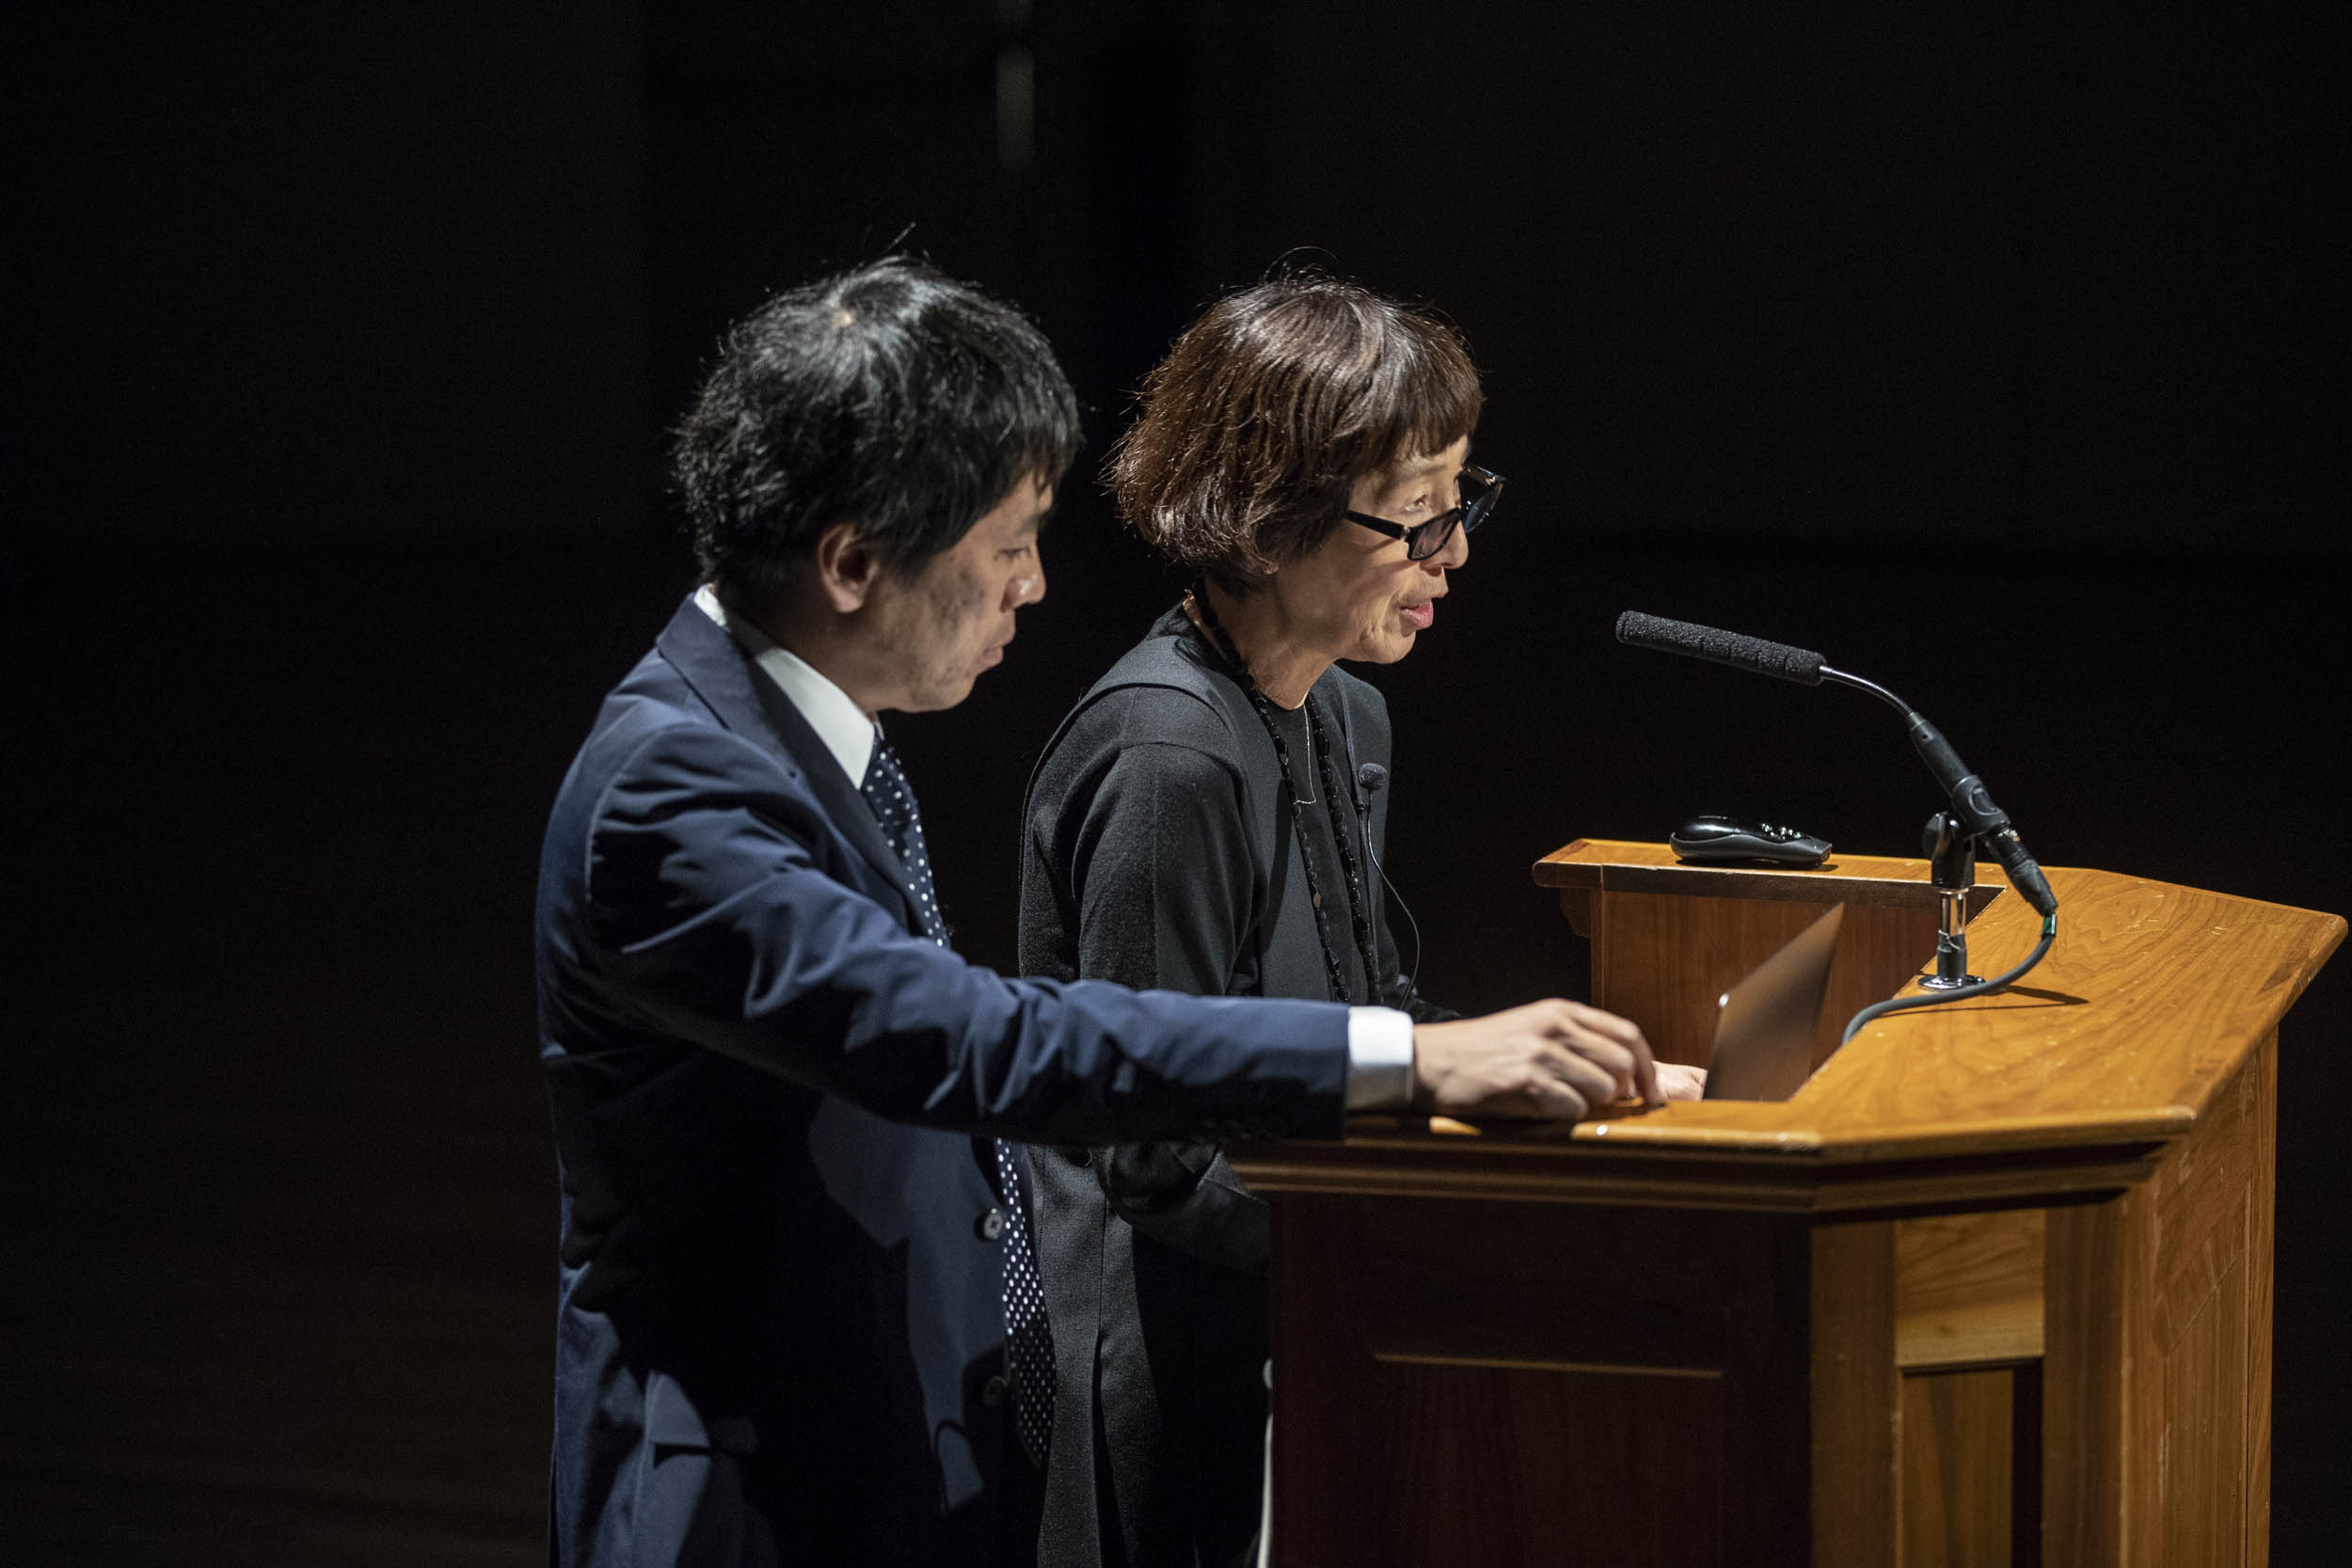 Kazuyo Sejima and Ryue Nishizawa shared some of their work with a large audience of students, faculty and community members in Old Cabell Hall Friday.